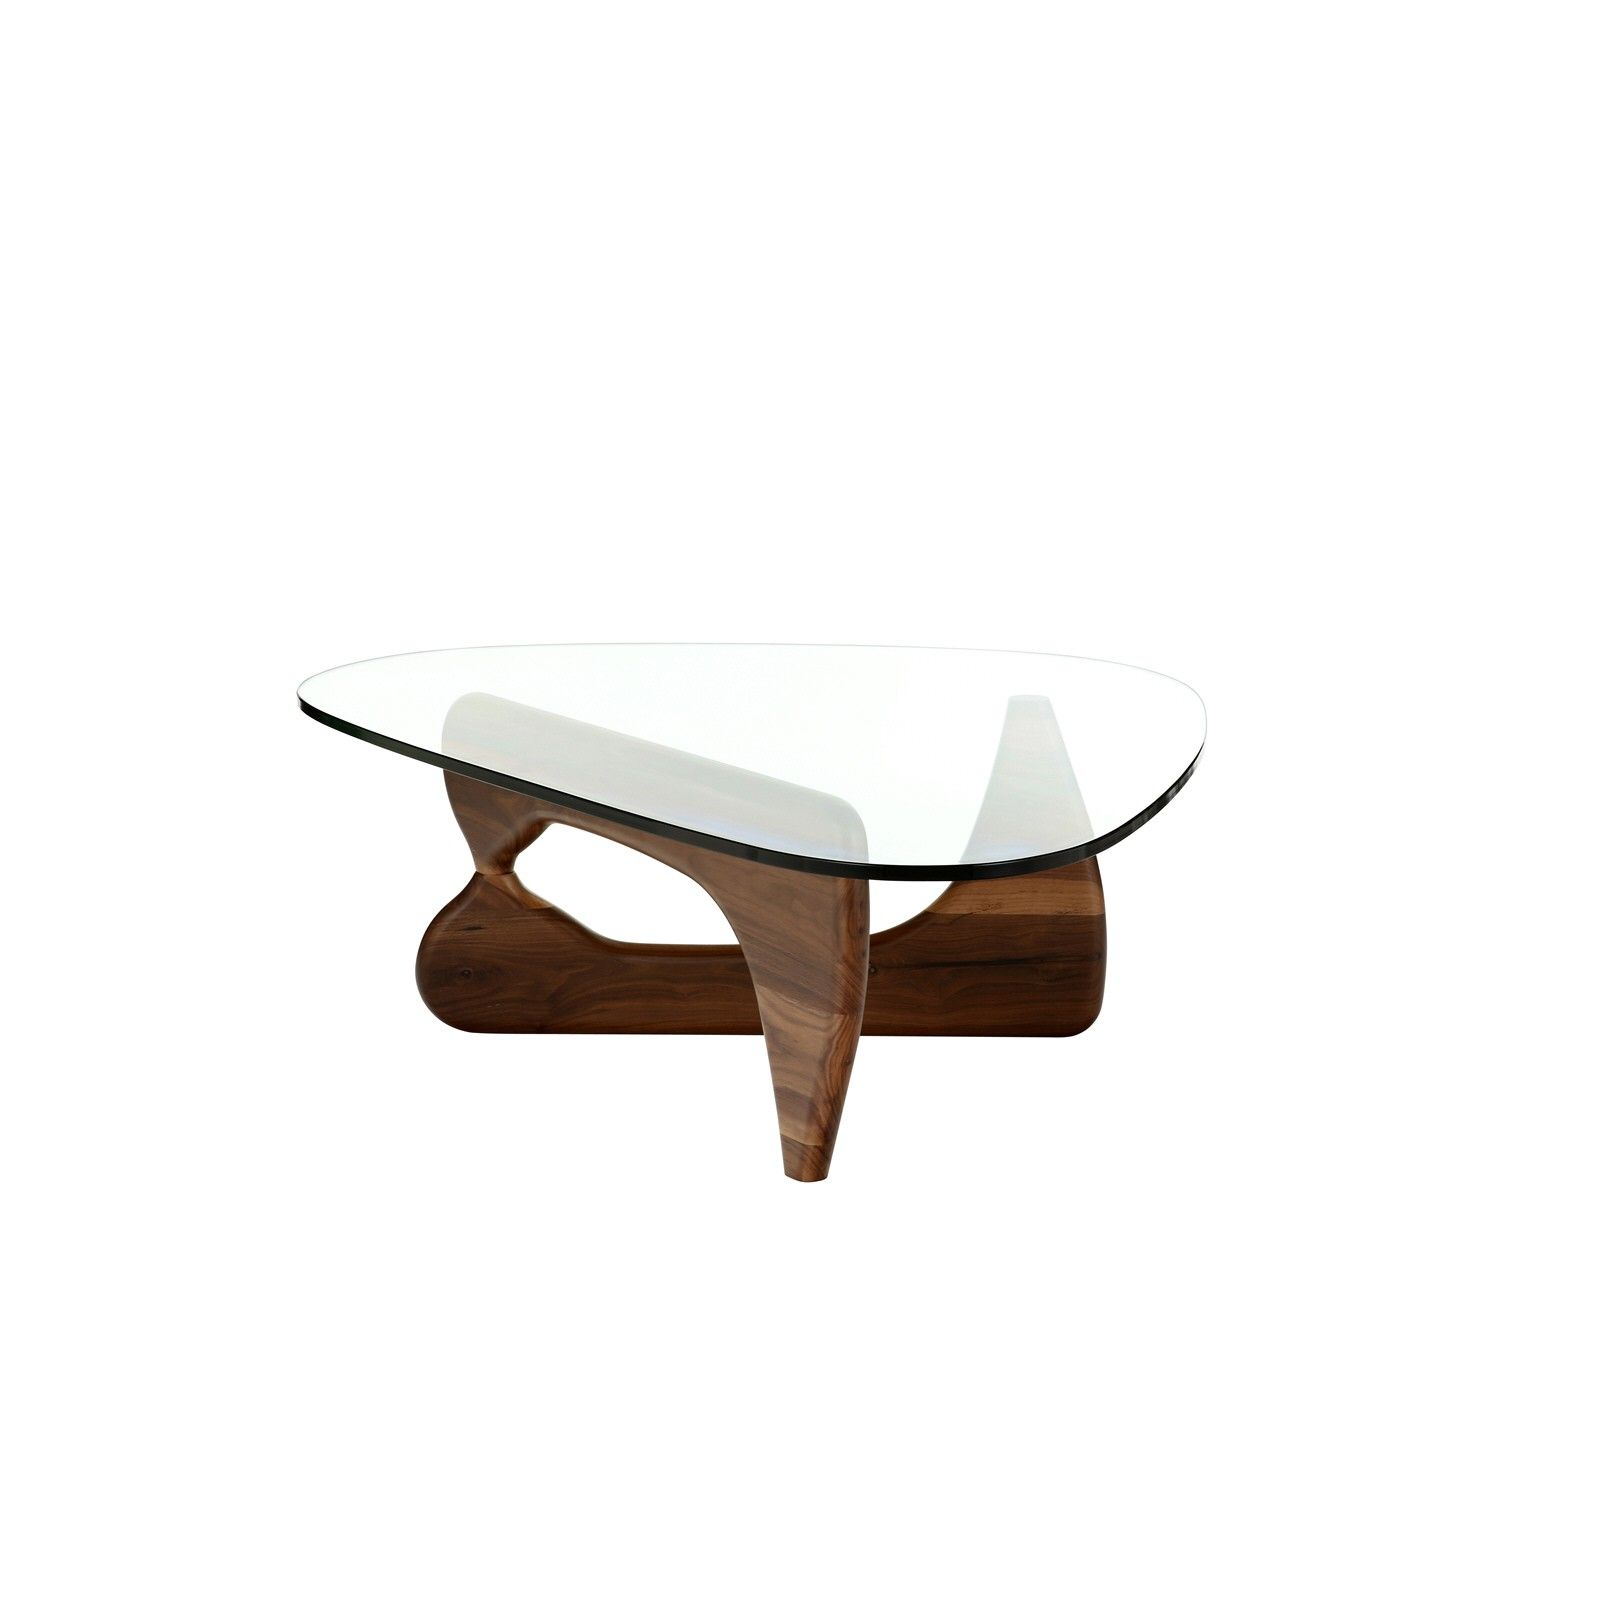 Replica Isamu Noguchi Coffee Table   Walnut | Coffee Tables | Nick Scali  Online Nick Scali